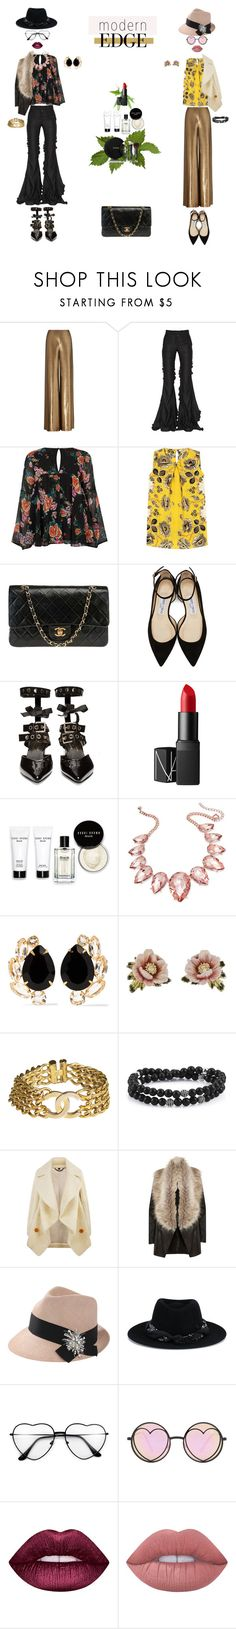 """modern.edge"" by k-hearts-a ❤ liked on Polyvore featuring Ralph Lauren, Marco de Vincenzo, River Island, Etro, Chanel, Jimmy Choo, Robert Clergerie, NARS Cosmetics, Bobbi Brown Cosmetics and Thalia Sodi"